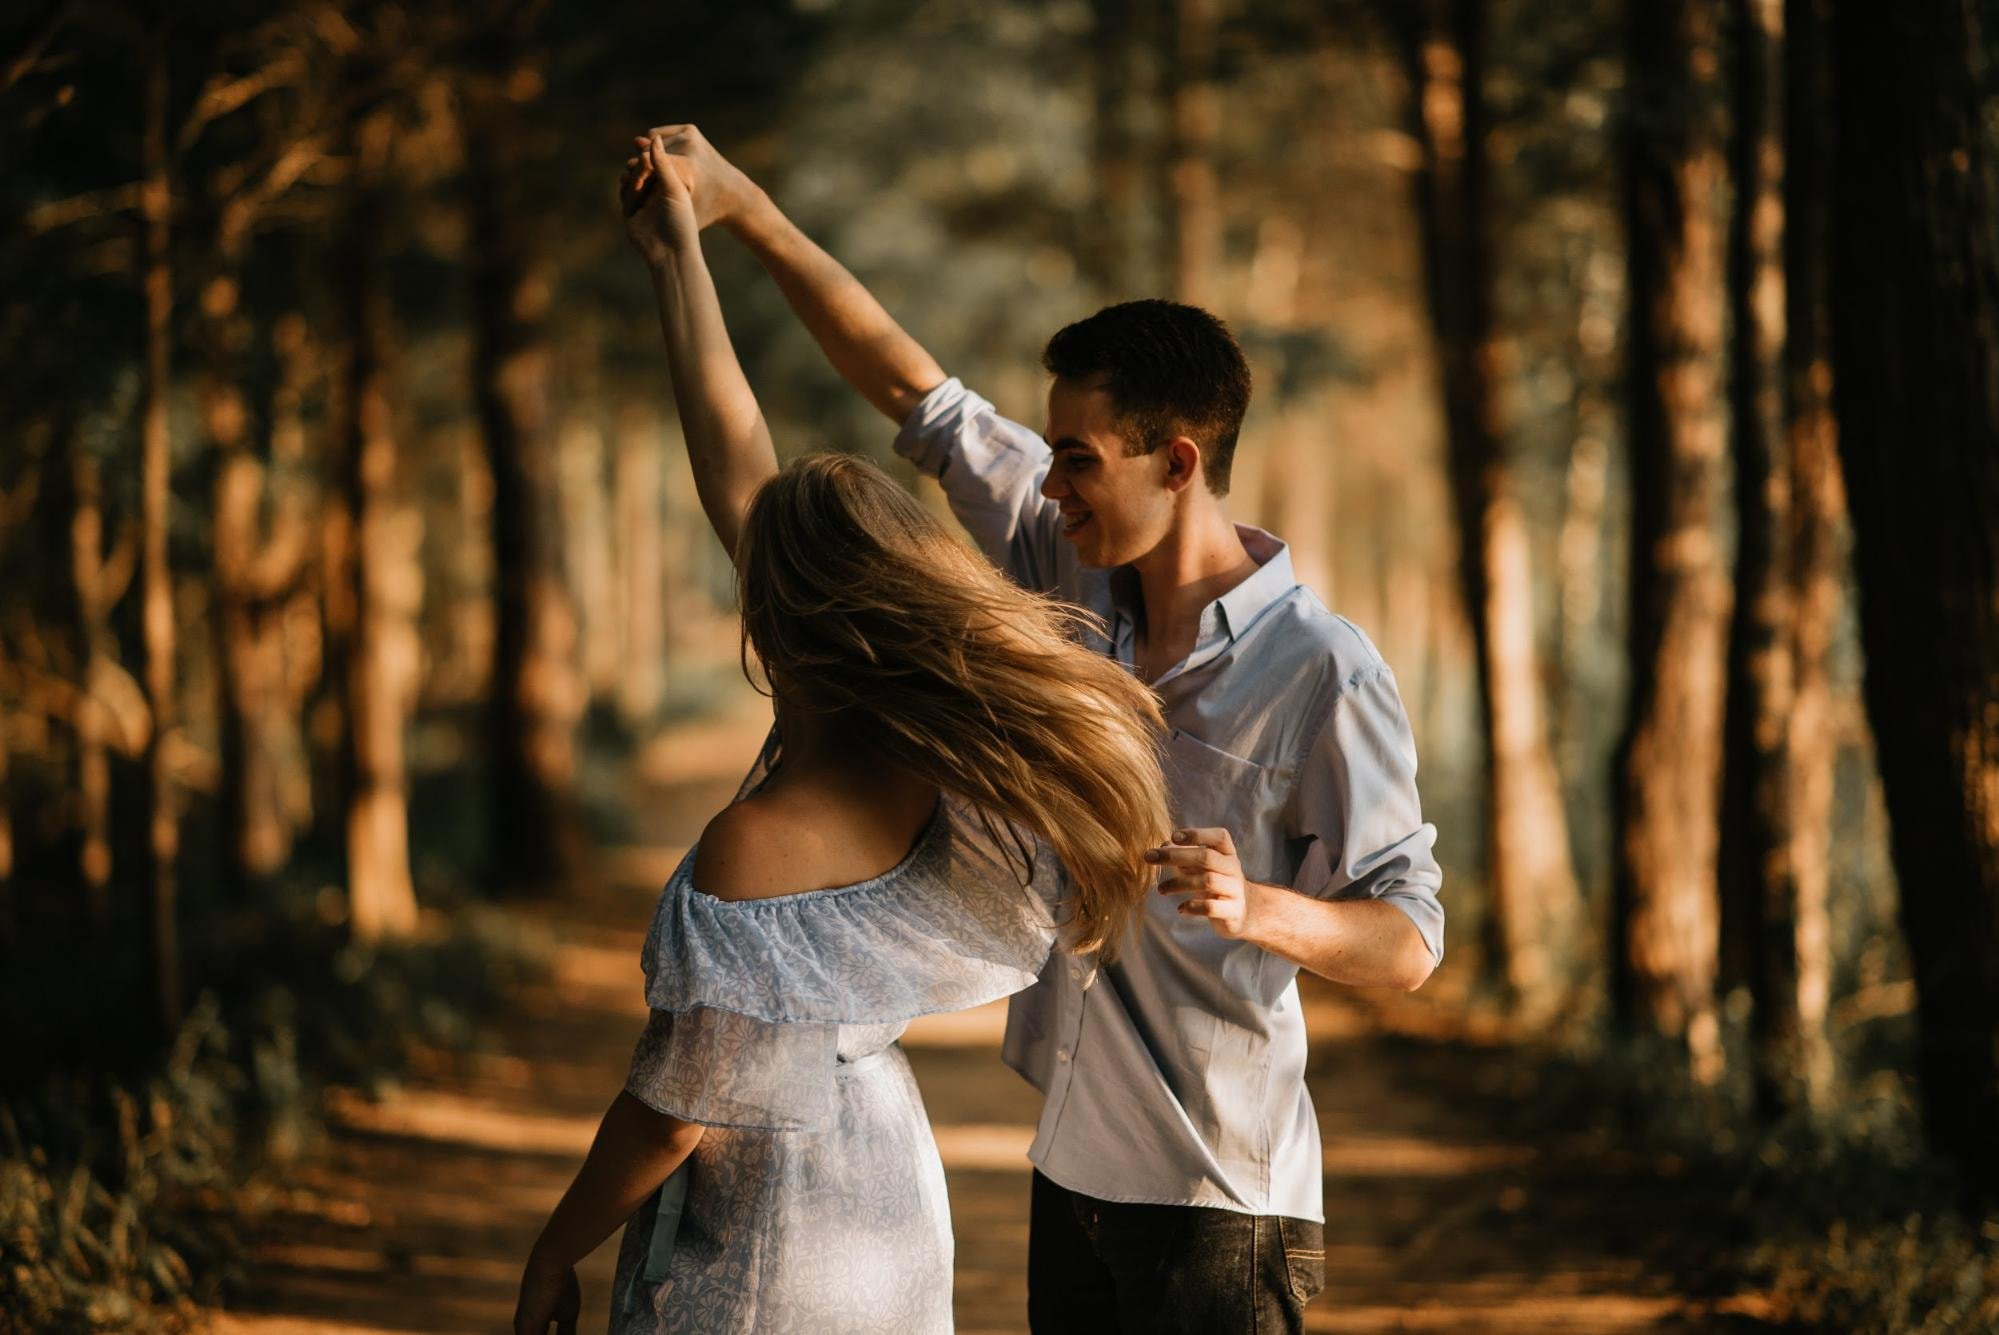 20 Couple Poses And Photography Ideas To Capture Genuinely Romantic Portraits